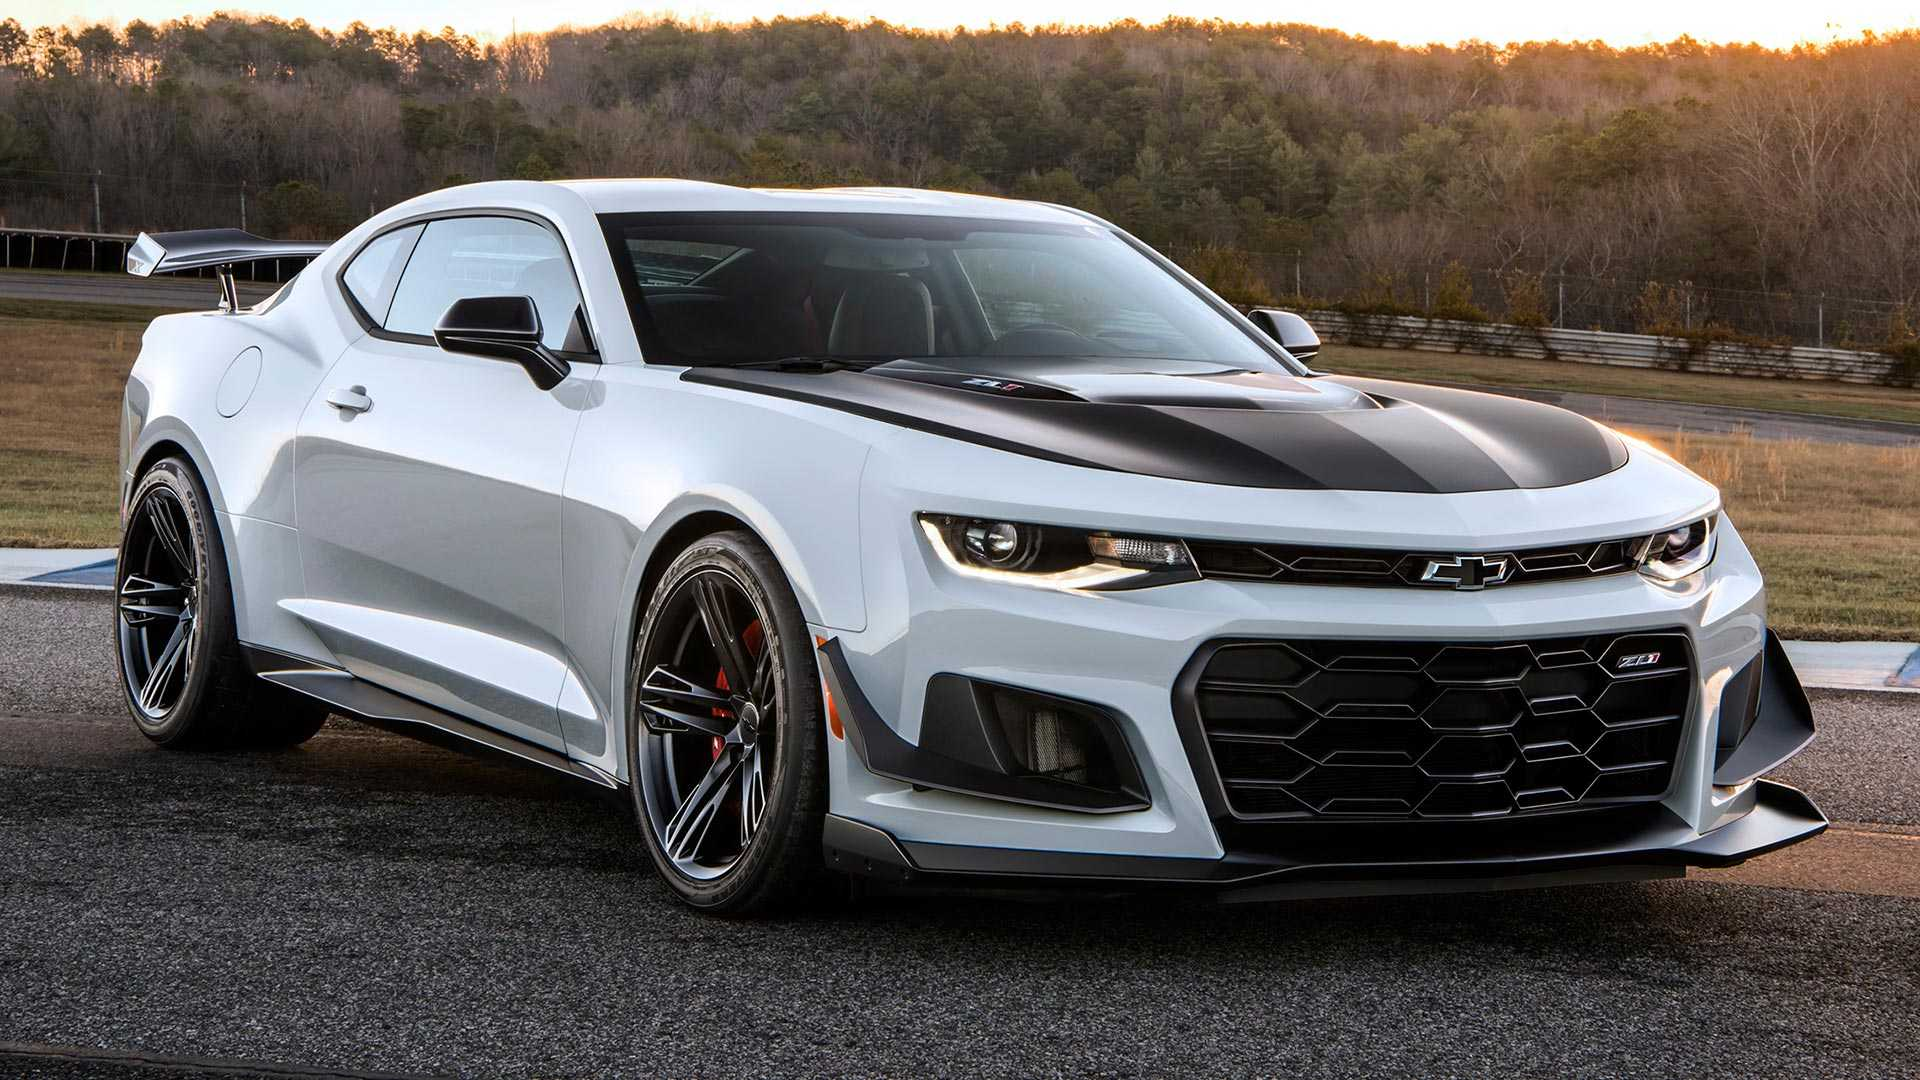 83 The 2019 Chevrolet Camaro Model